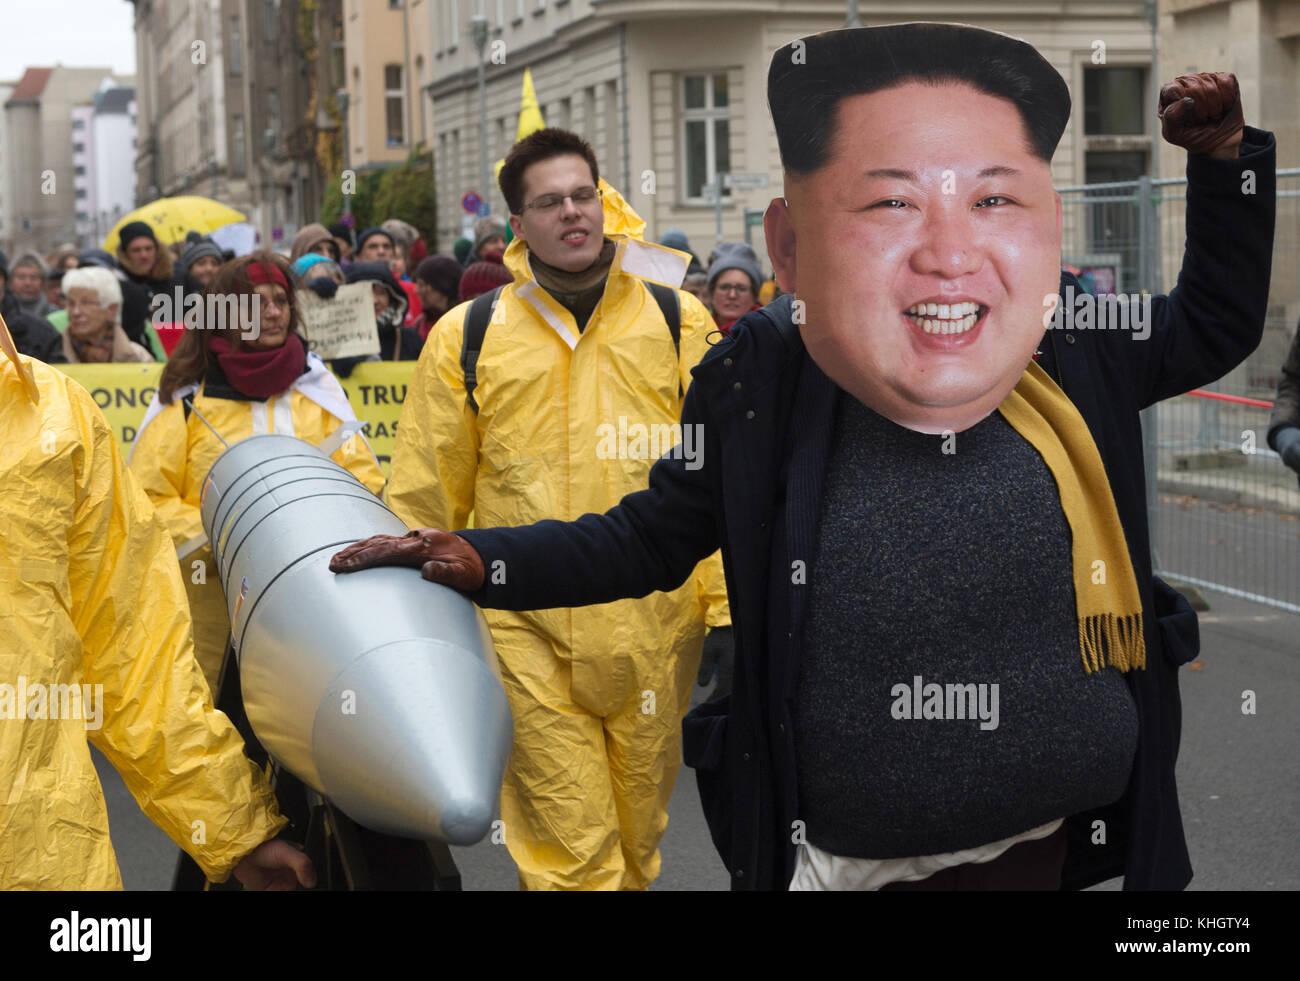 Berlin, Germany. 18th Nov, 2017. Protestors can be seen demonstrating against nuclear weapons politics in front - Stock Image